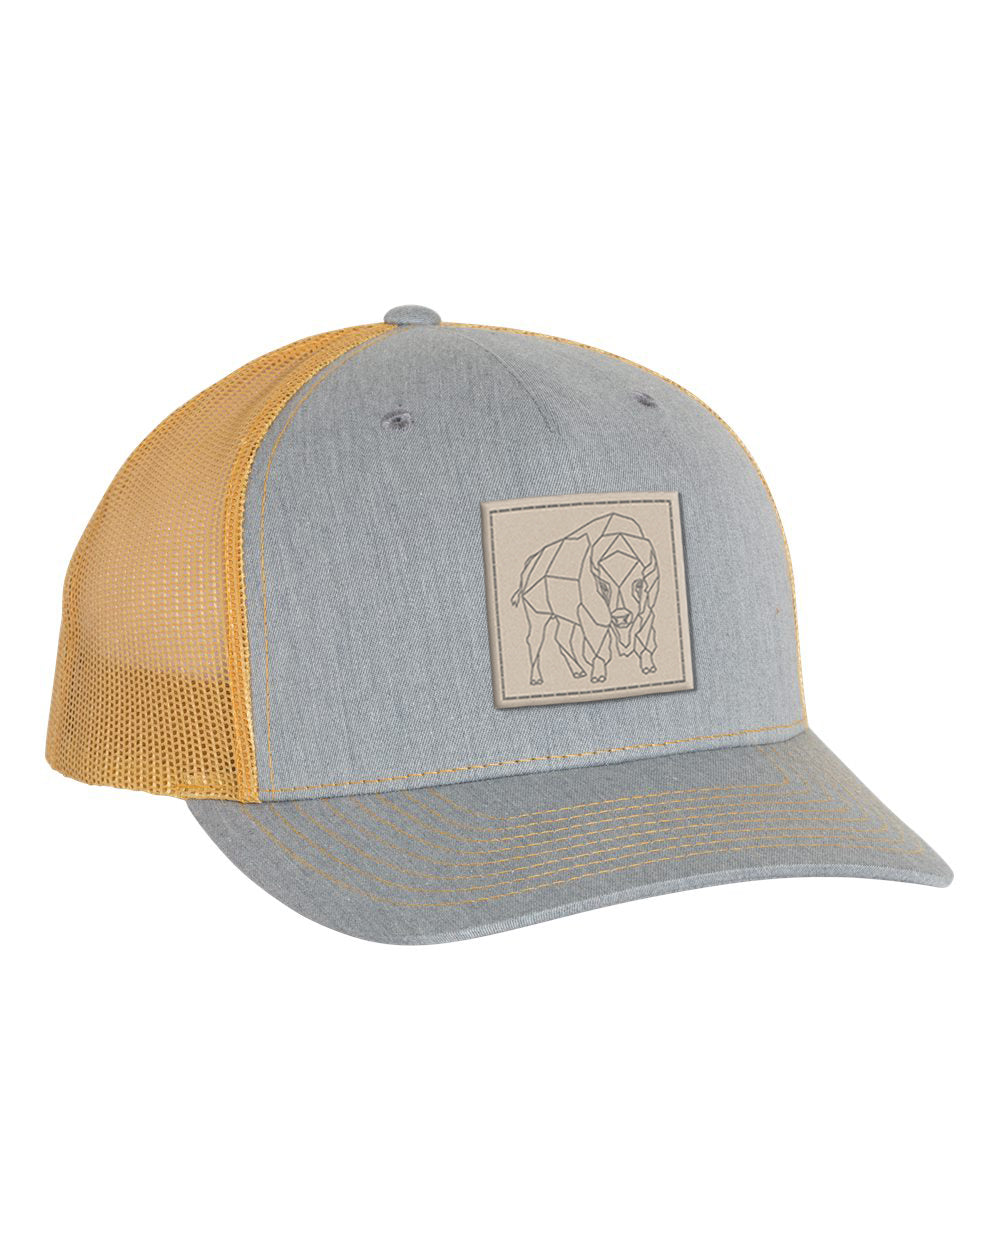 Bison Patch Snapback - Heather Grey/Amber Gold - Side